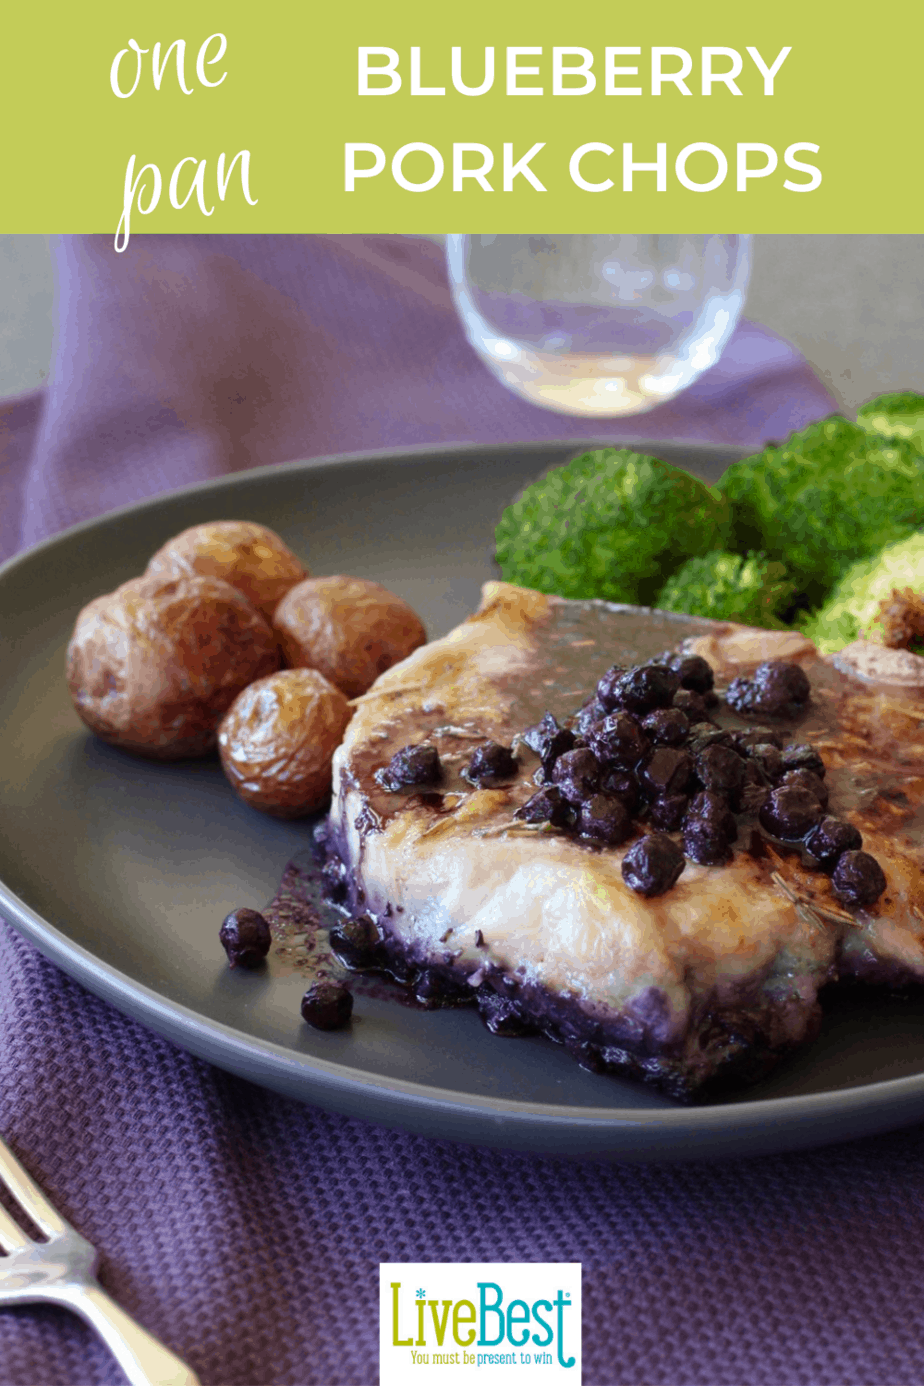 plate with blueberry topped pork chop, broccoli and potatoes